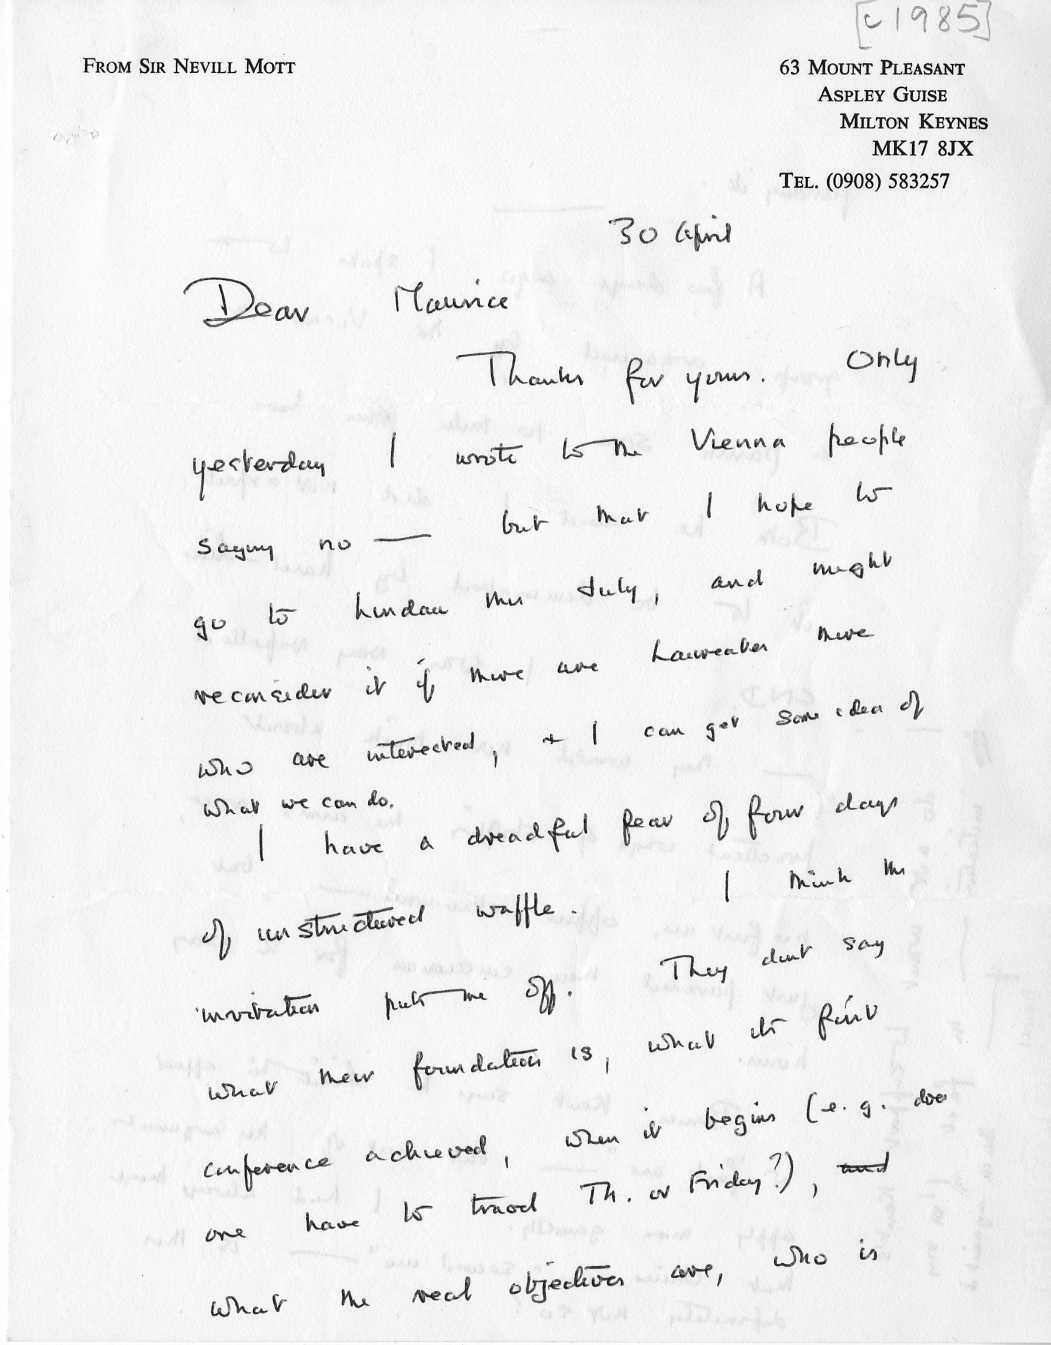 Dna and social responsibility cataloguing the personal papers of dna and social responsibility cataloguing the personal papers of maurice wilkins 1916 2004 not another conference a letter from sir nevill mott on the spiritdancerdesigns Choice Image